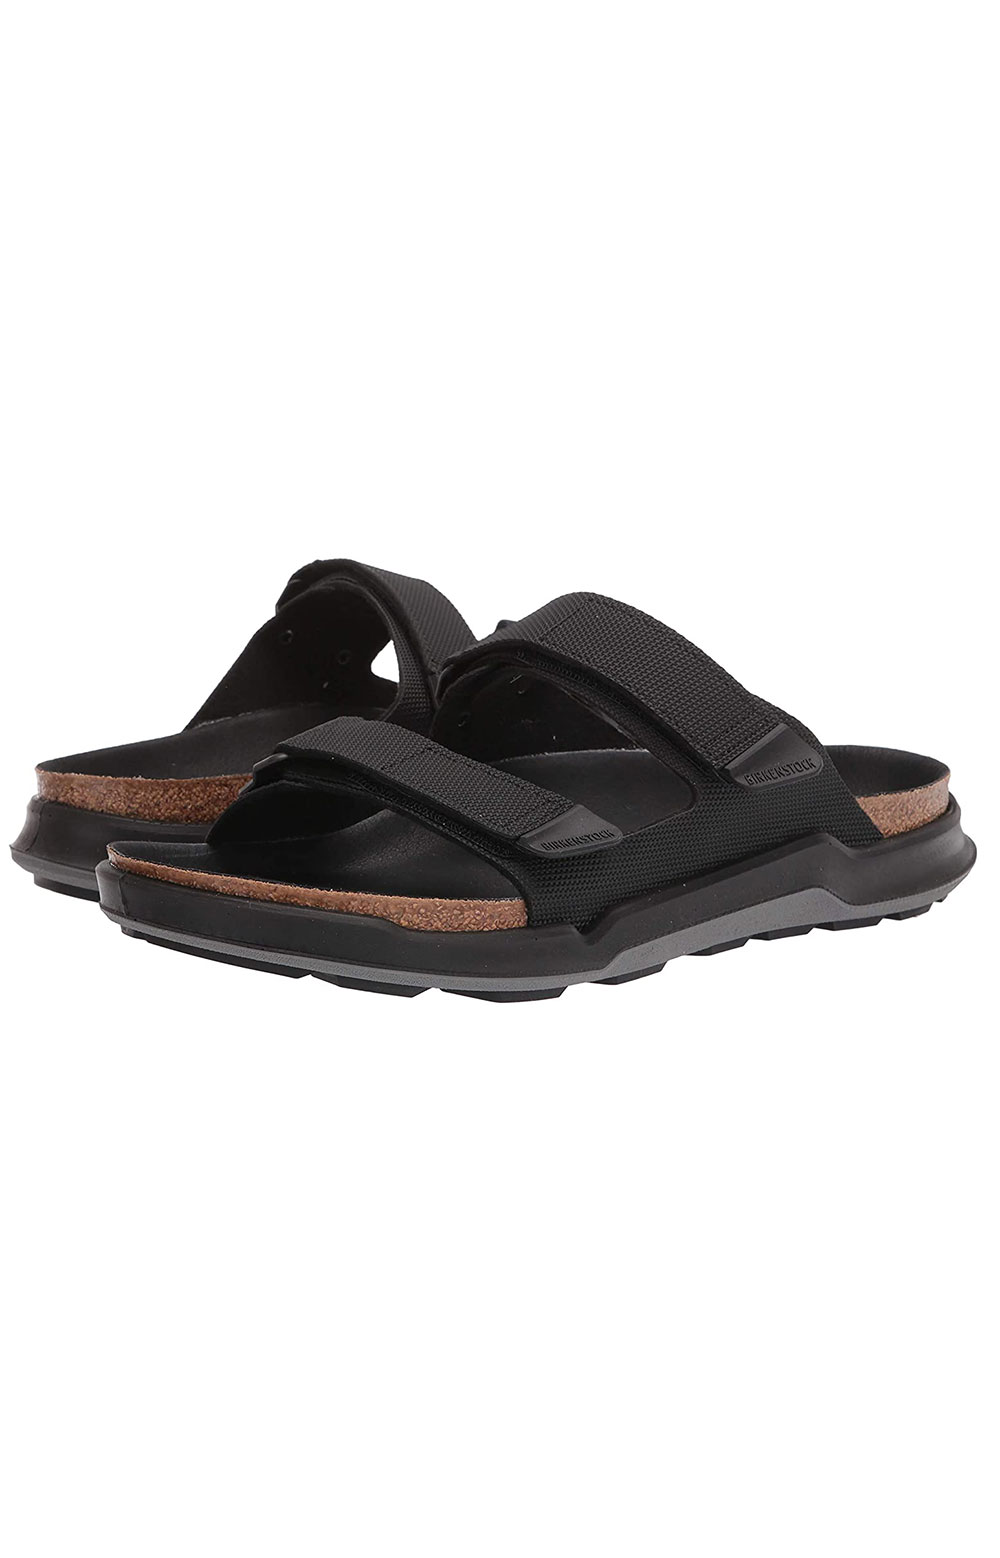 (1013755) Atacama Sandals - Future Black